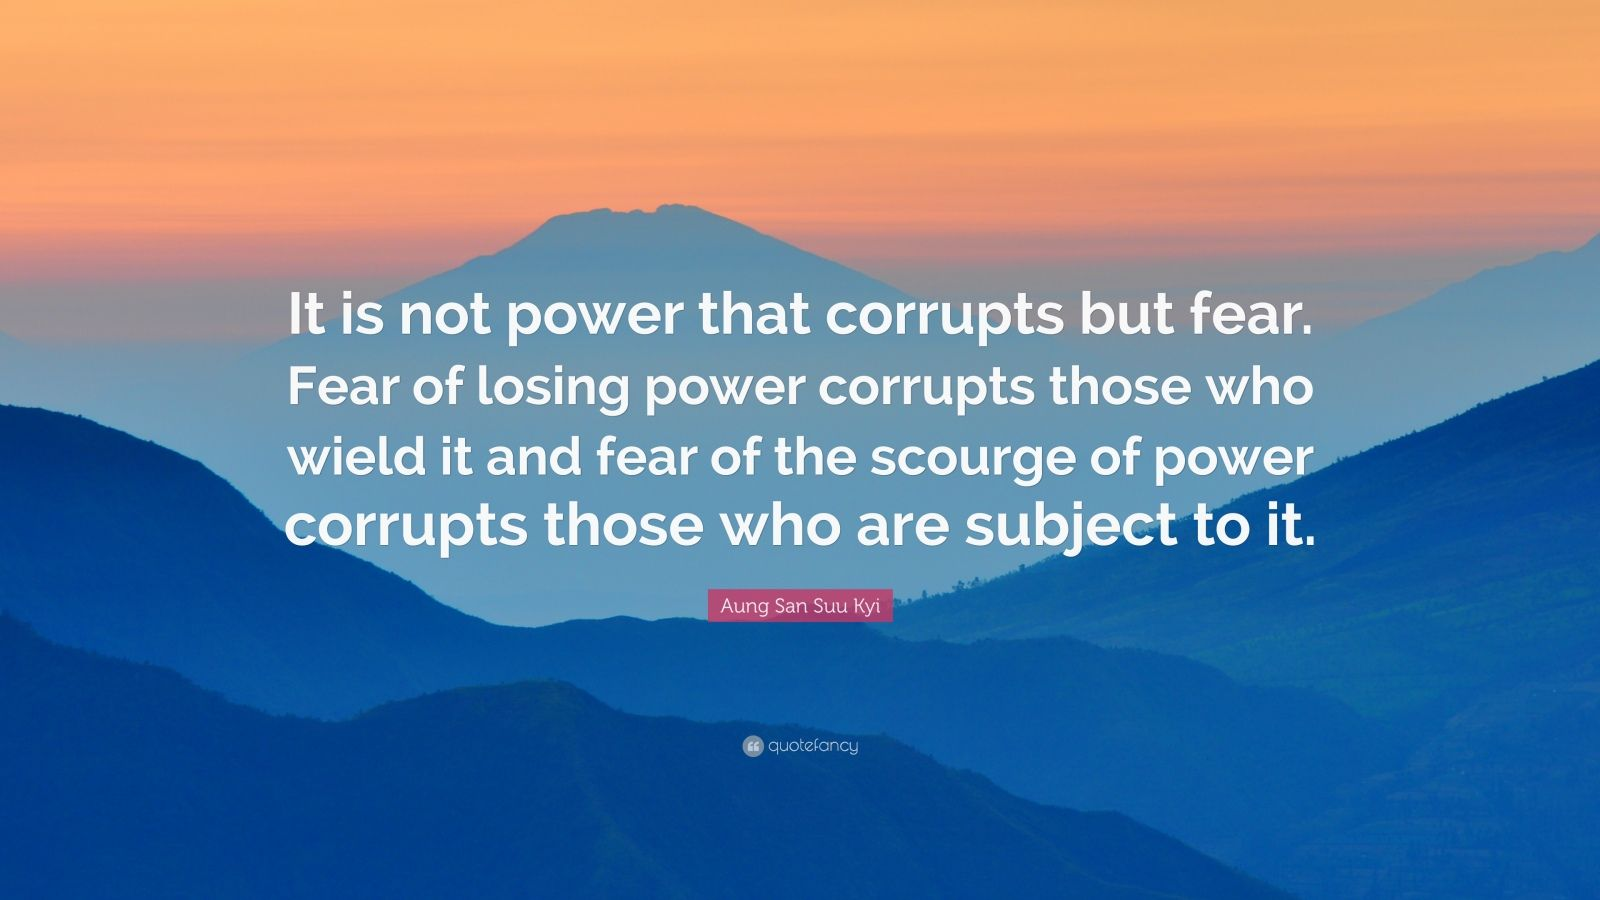 "Aung San Suu Kyi Quote: ""It is not power that corrupts but fear. Fear of losing power corrupts those who wield it and fear of the scourge of power corrupts those who are subject to it."""